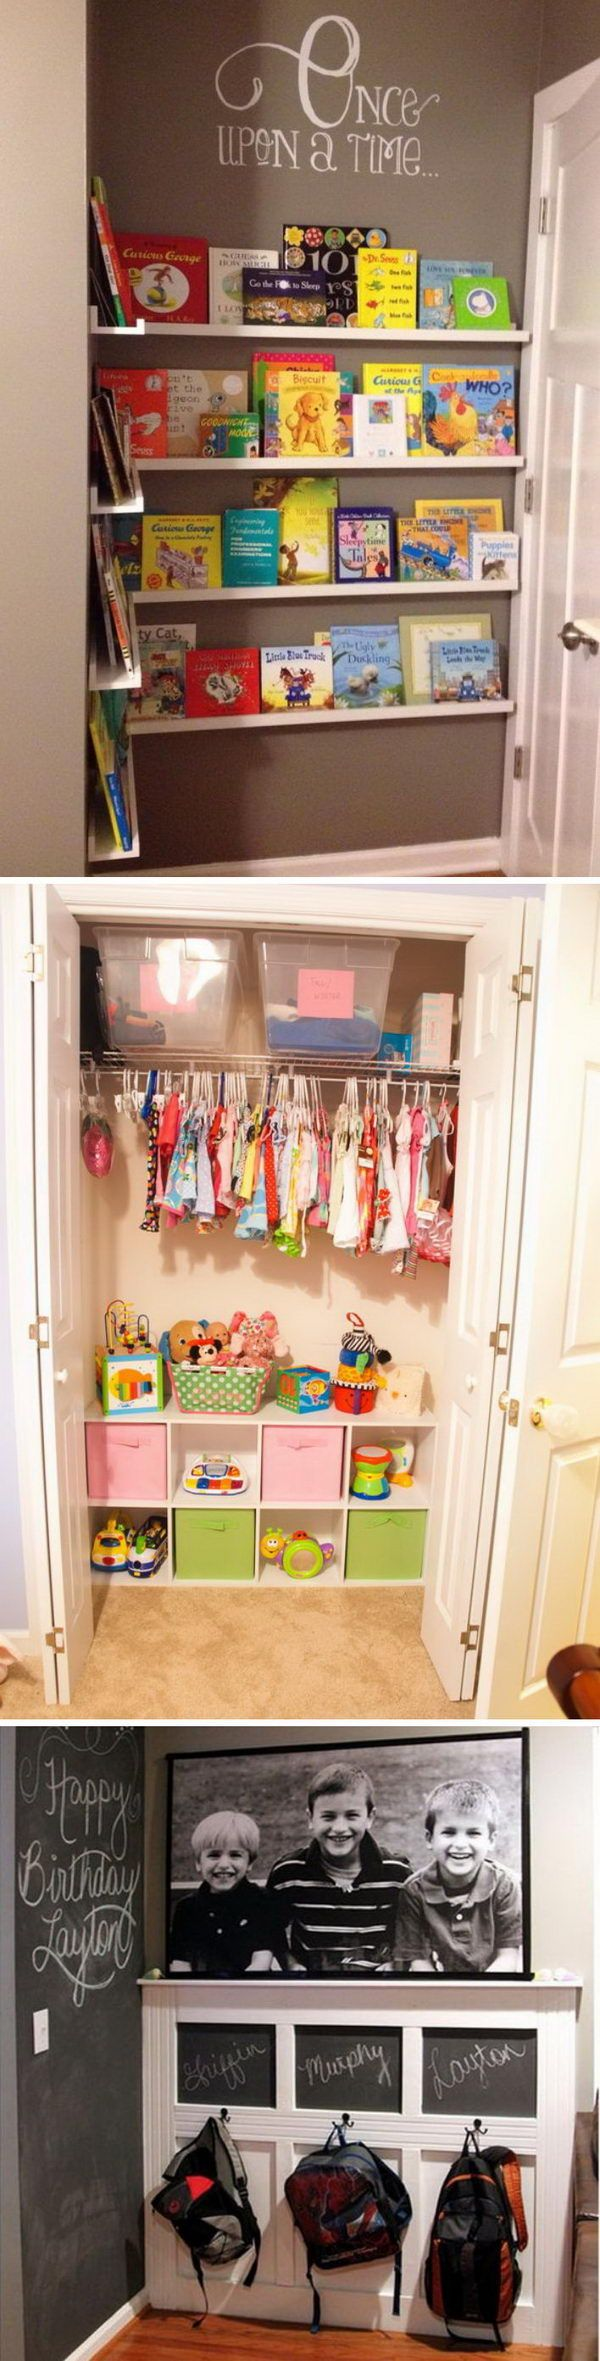 Best 25 kids library ideas on pinterest kid spaces for Kids room storage ideas